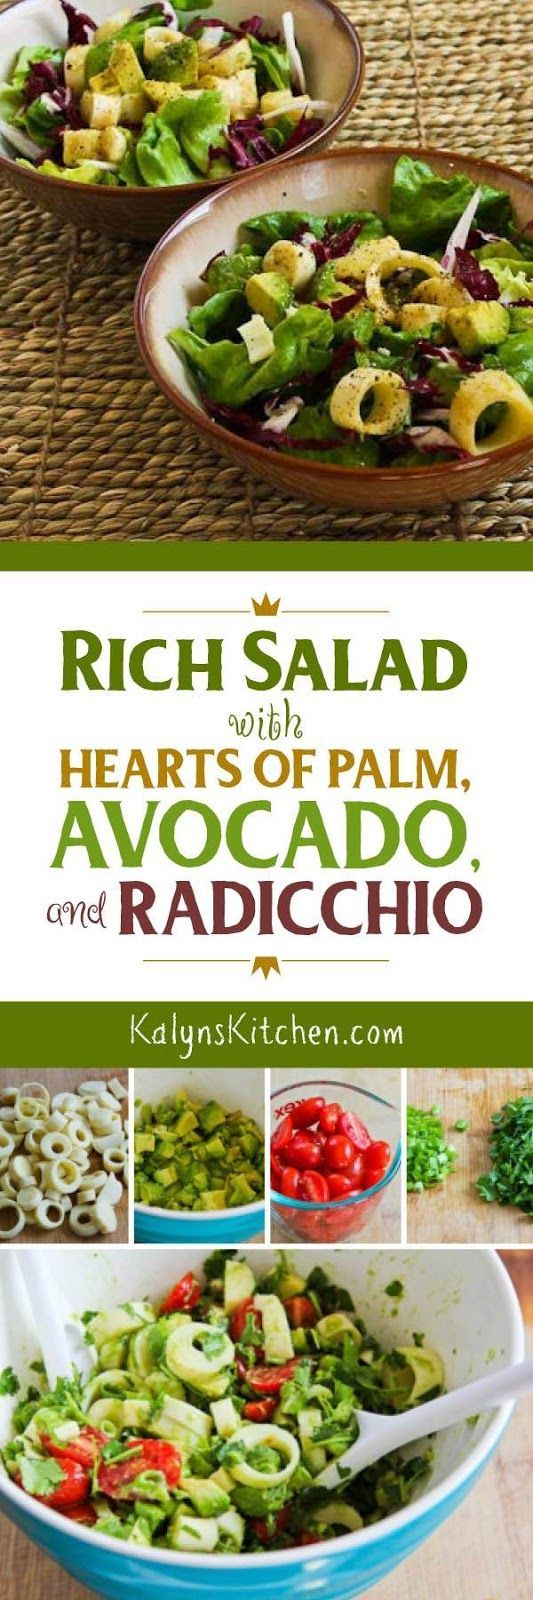 Rich Salad with Hearts of Palm, Avocado, and Radicchio is perfect for a holiday meal or special dinner, and this amazing salad is low-carb, gluten-free, dairy-free, and South Beach Diet friendly, and if you skip the Worcestershire sauce it can easily be Paleo or Whole 30.  [found on KalynsKitchen.com] #SaladRecipe #HolidaySaladRecipe #HeartsofPalmSalad